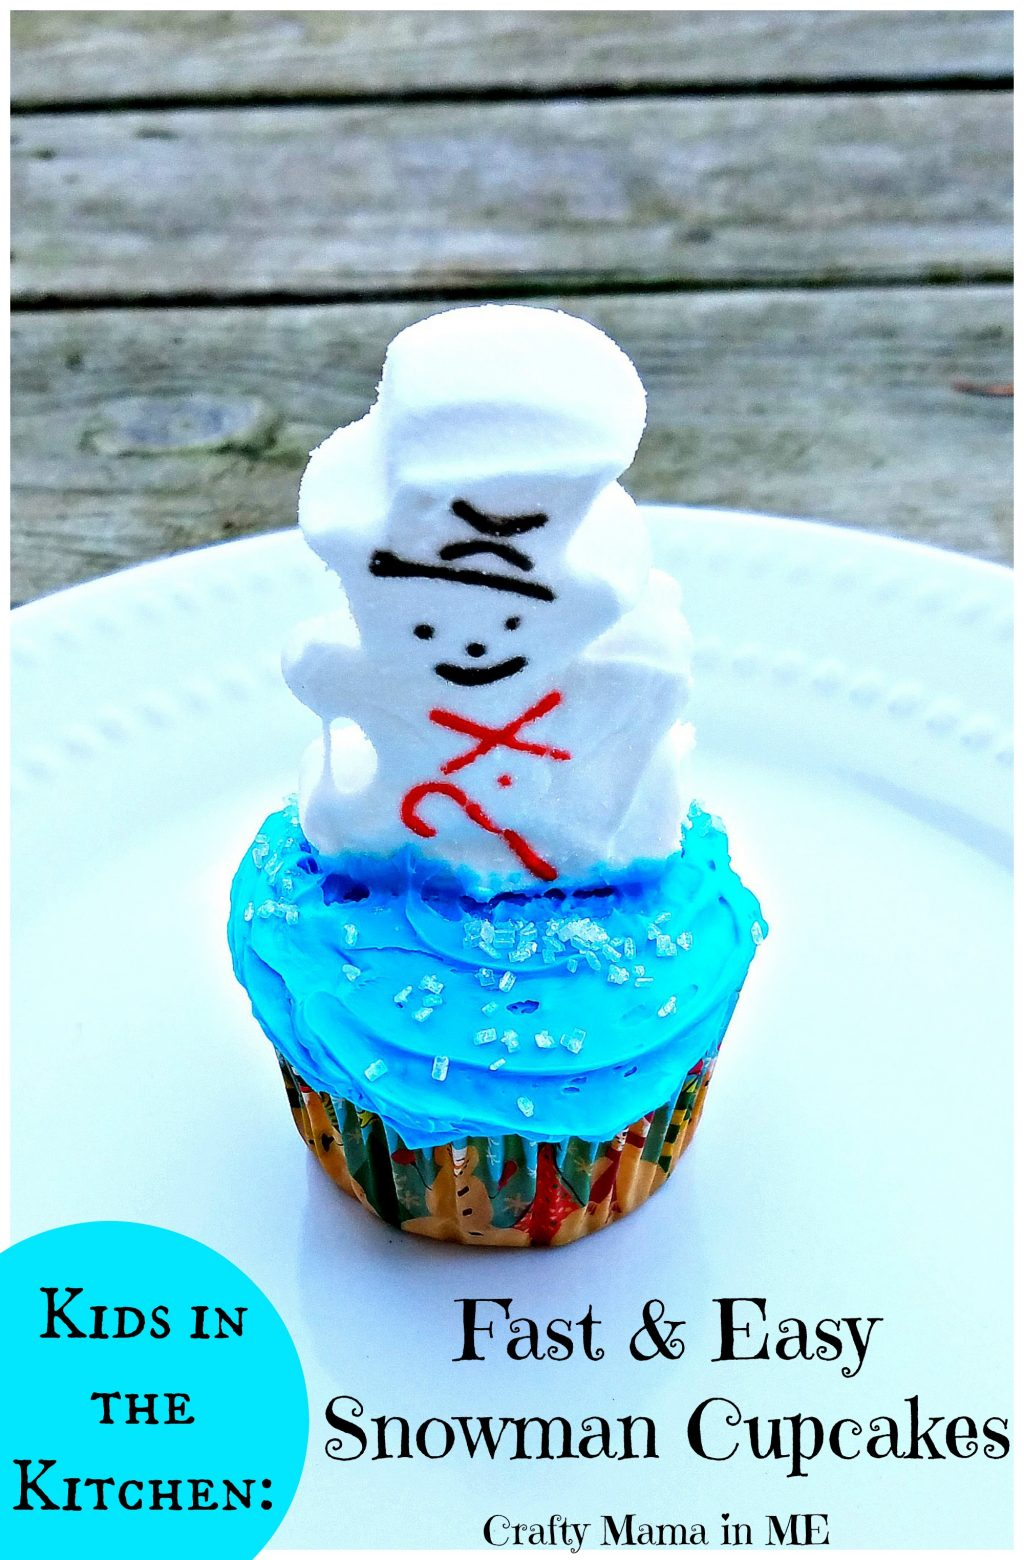 Kids in the Kitchen: Fast & Easy Snowman Cupcakes